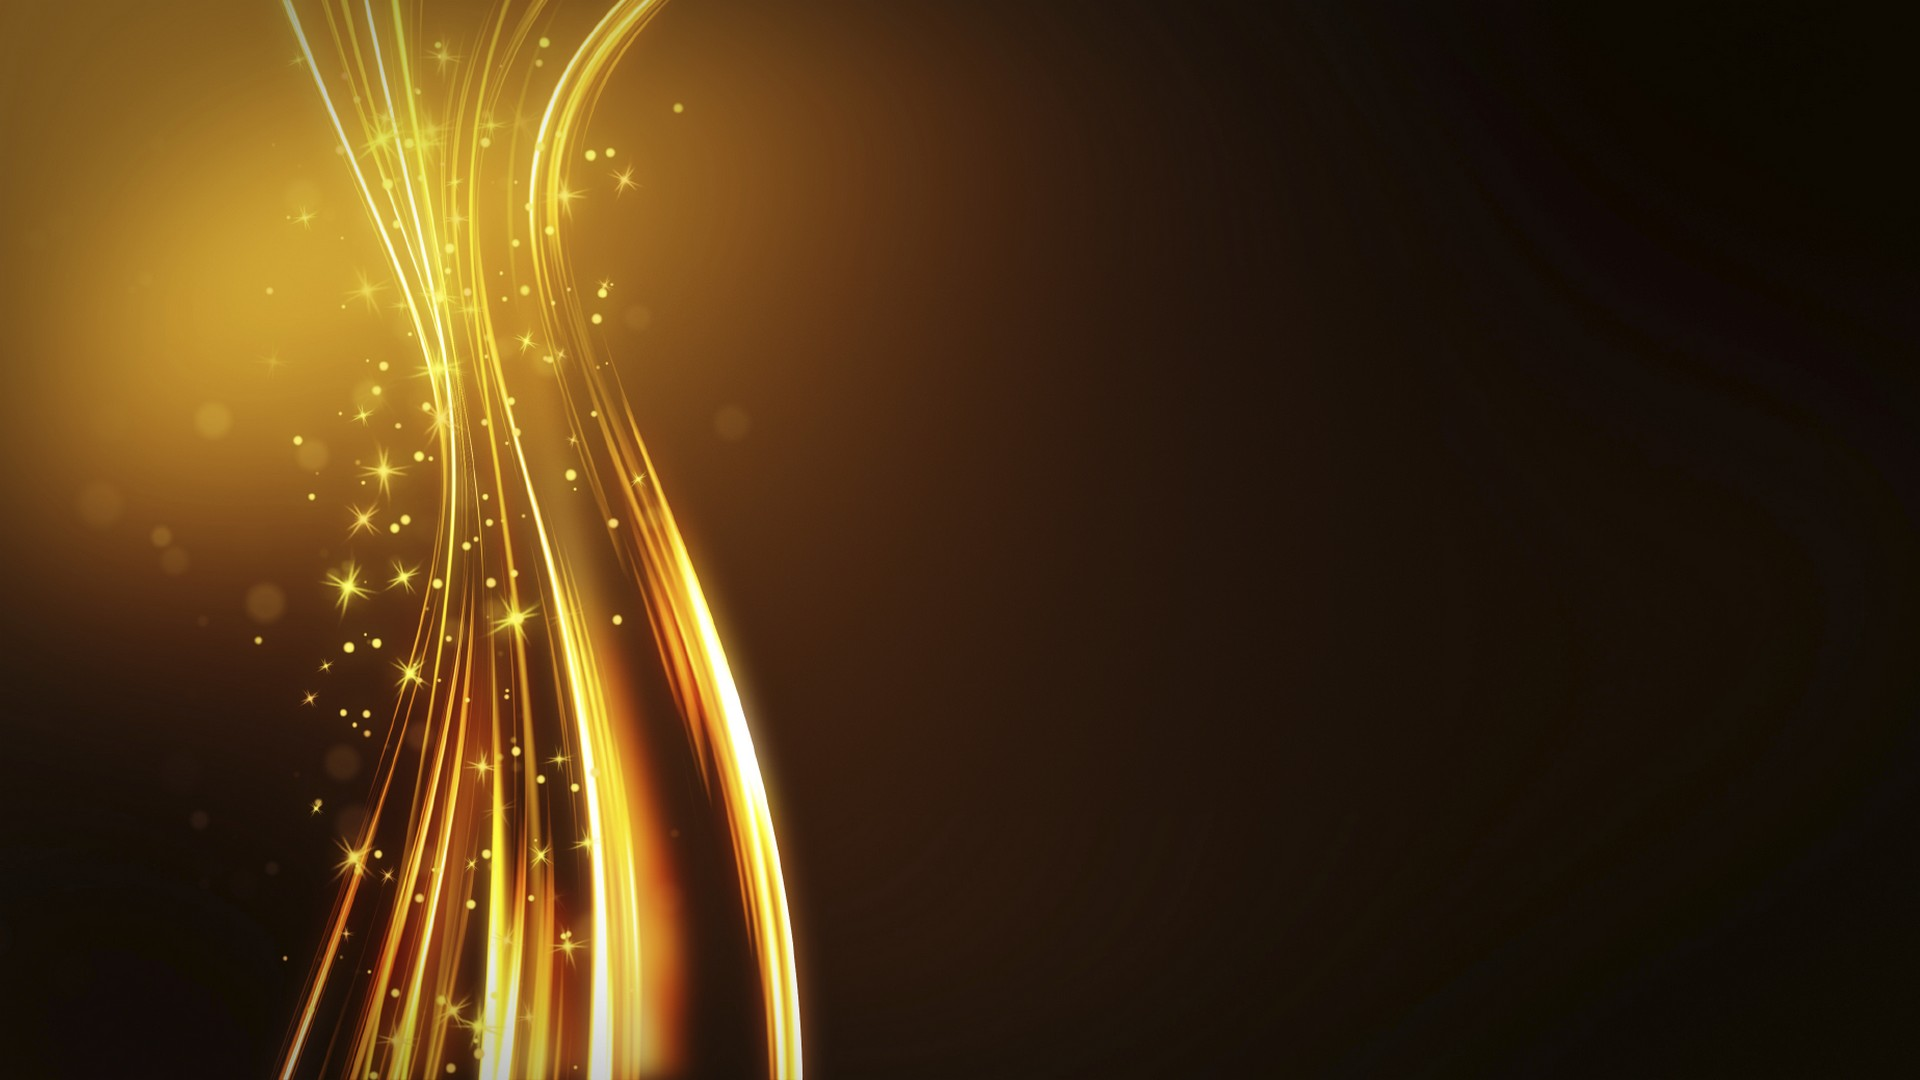 Wallpapers Black and Gold  2019 Cute Wallpapers